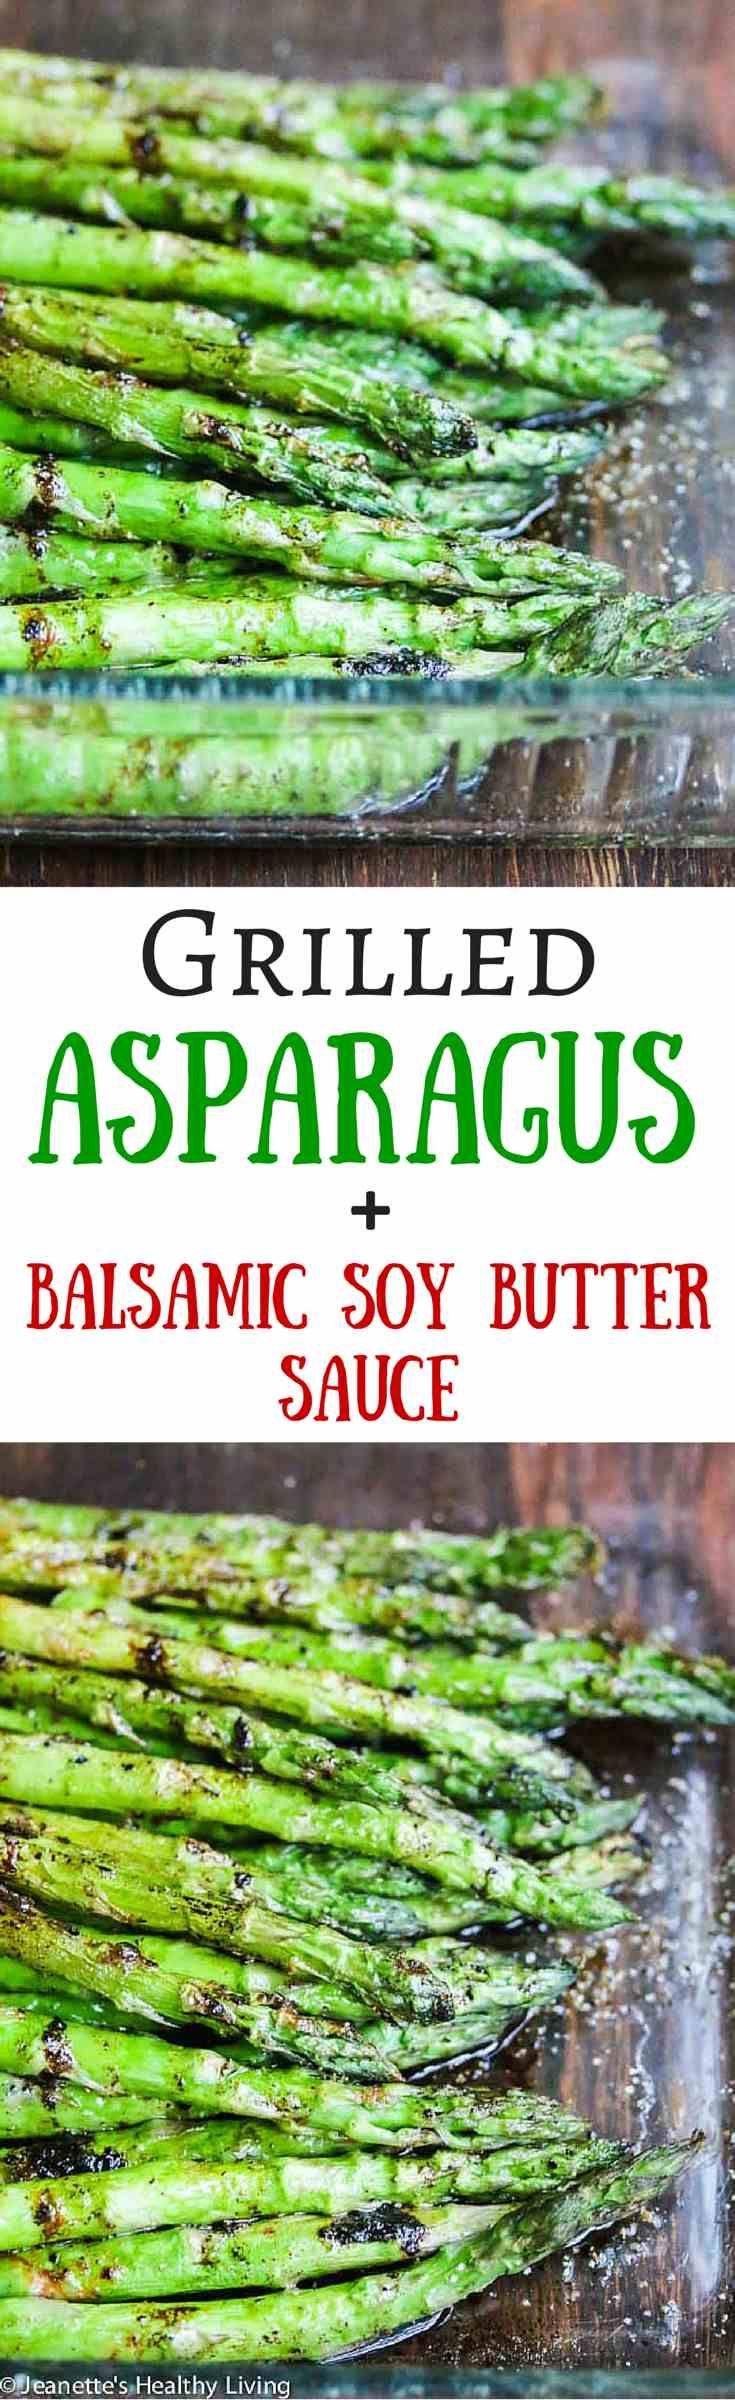 Grilled Asparagus with Balsamic Soy Butter Sauce - a super easy and delicious recipe with just 4 ingredients ~ http://jeanetteshealthyliving.com